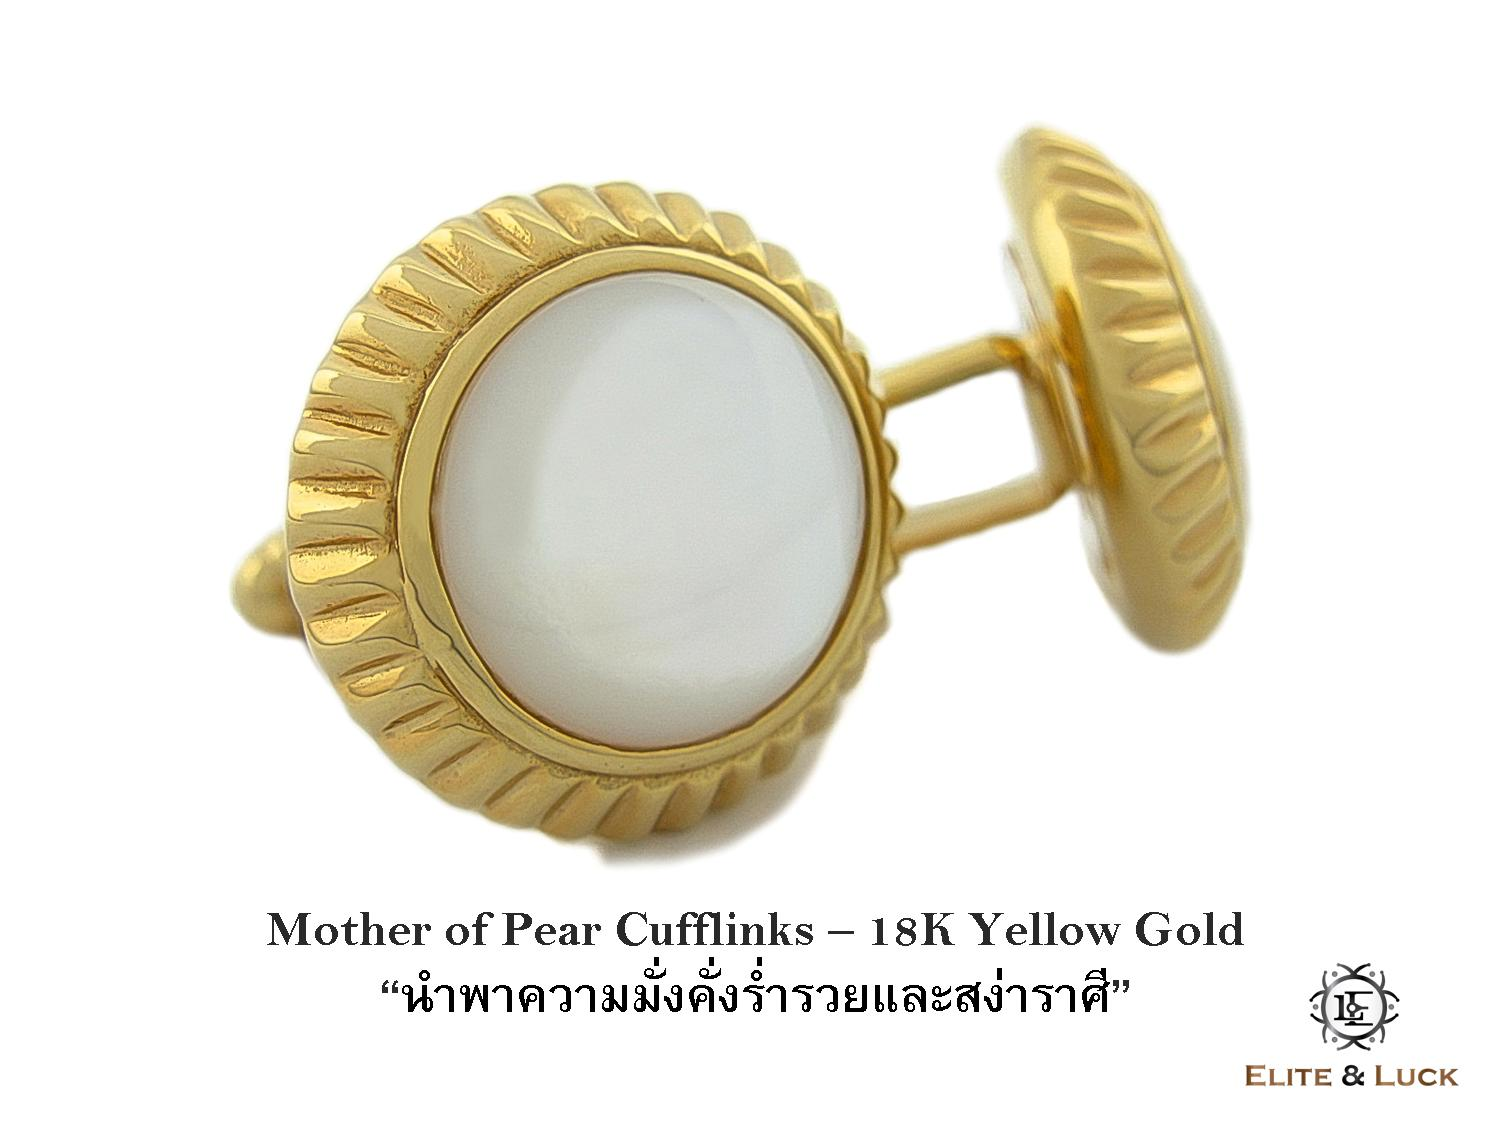 Mother of Pearl Sterling Sterling Silver Cufflinks สี 18K Yellow Gold รุ่น Elegant